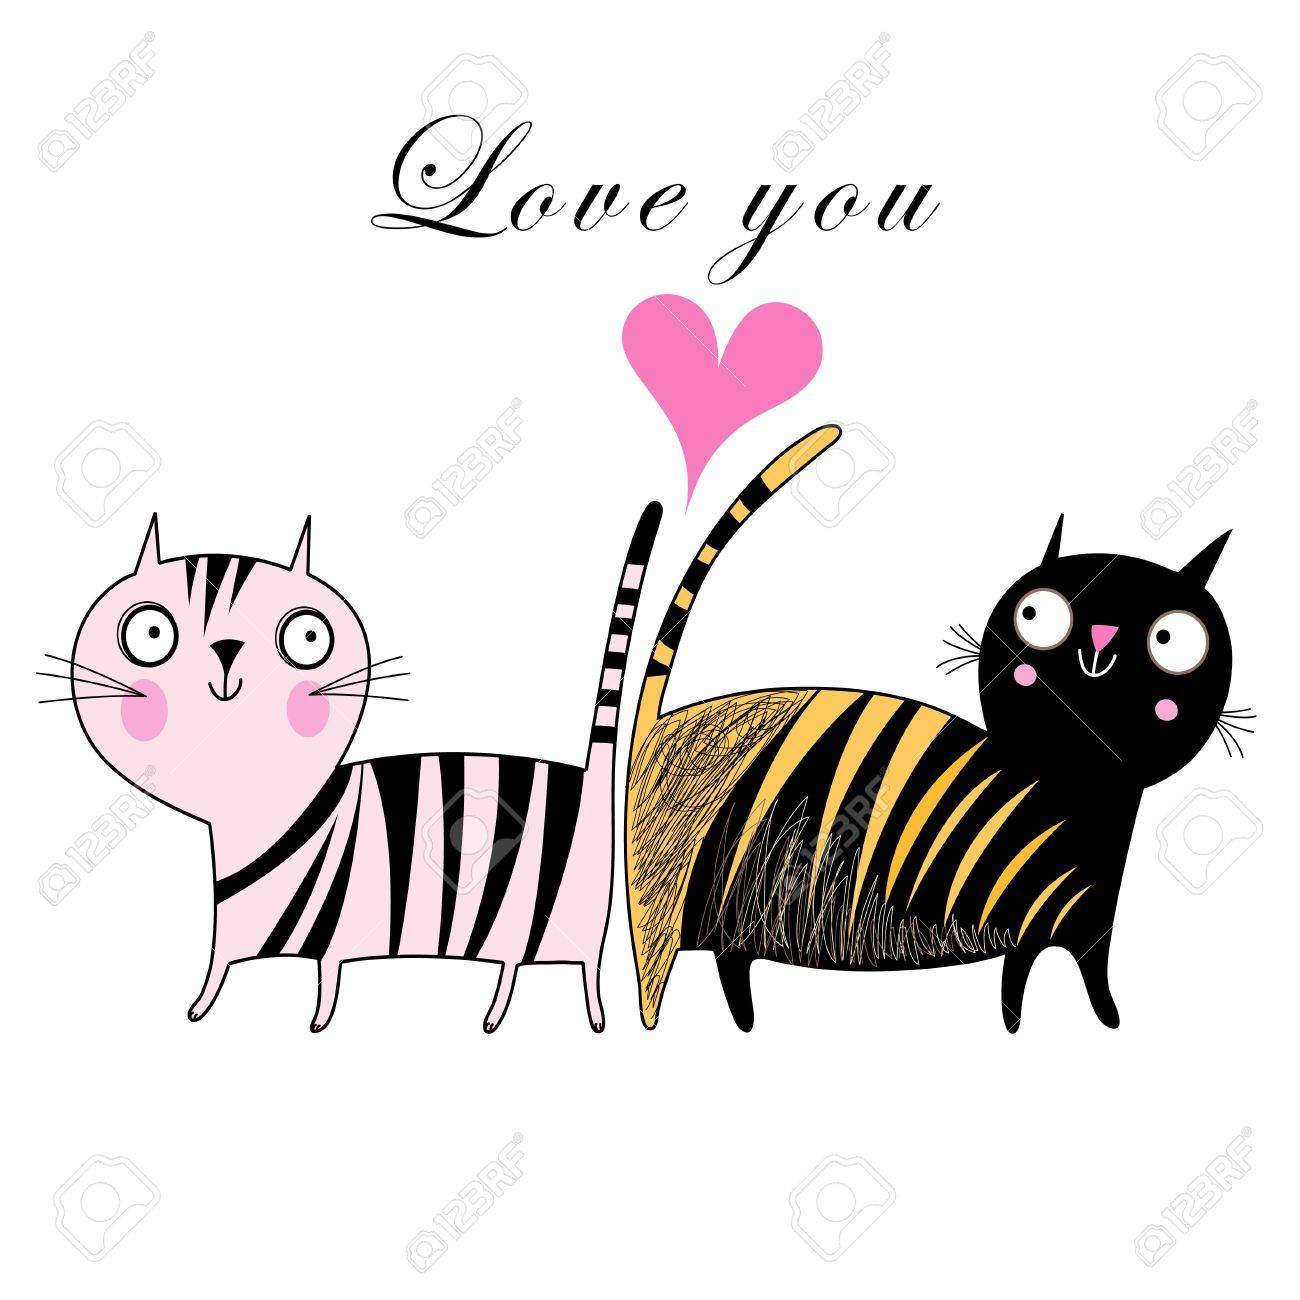 funny love cats on a white background with a heart - 19376892